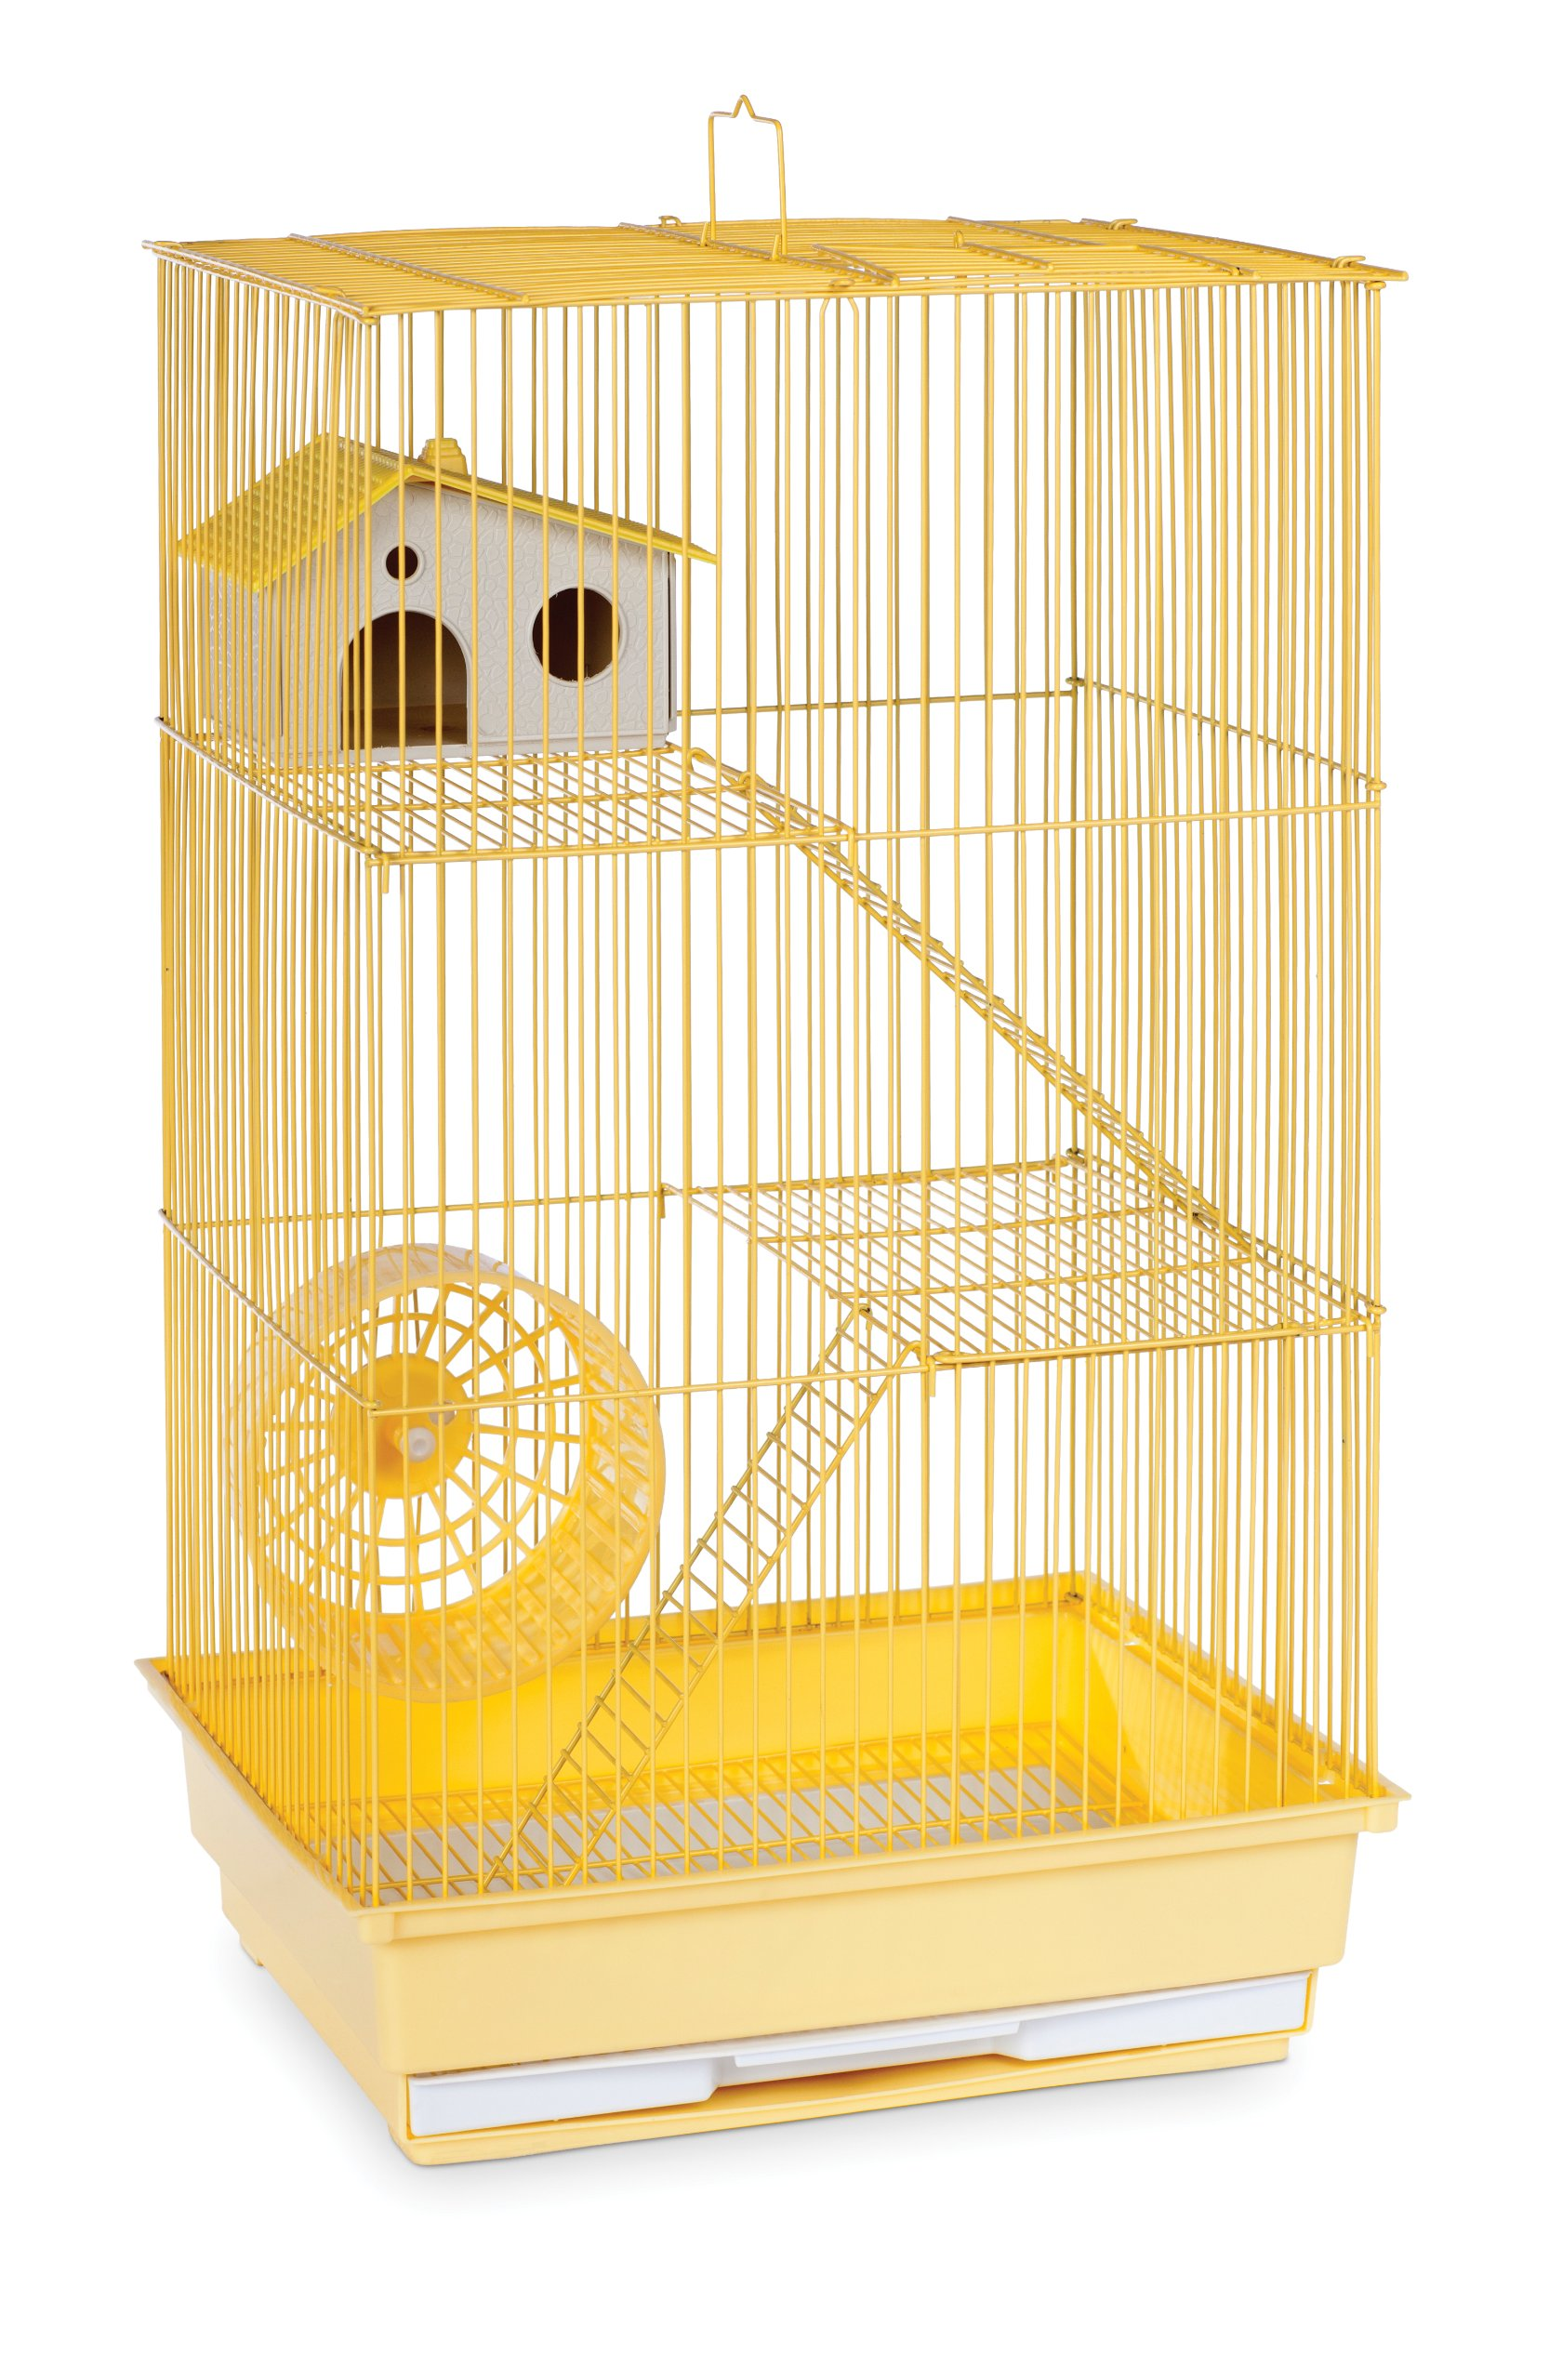 Prevue Hendryx SP2030Y Three Story Hamster and Gerbil Cage, Yellow by Prevue Pet Products